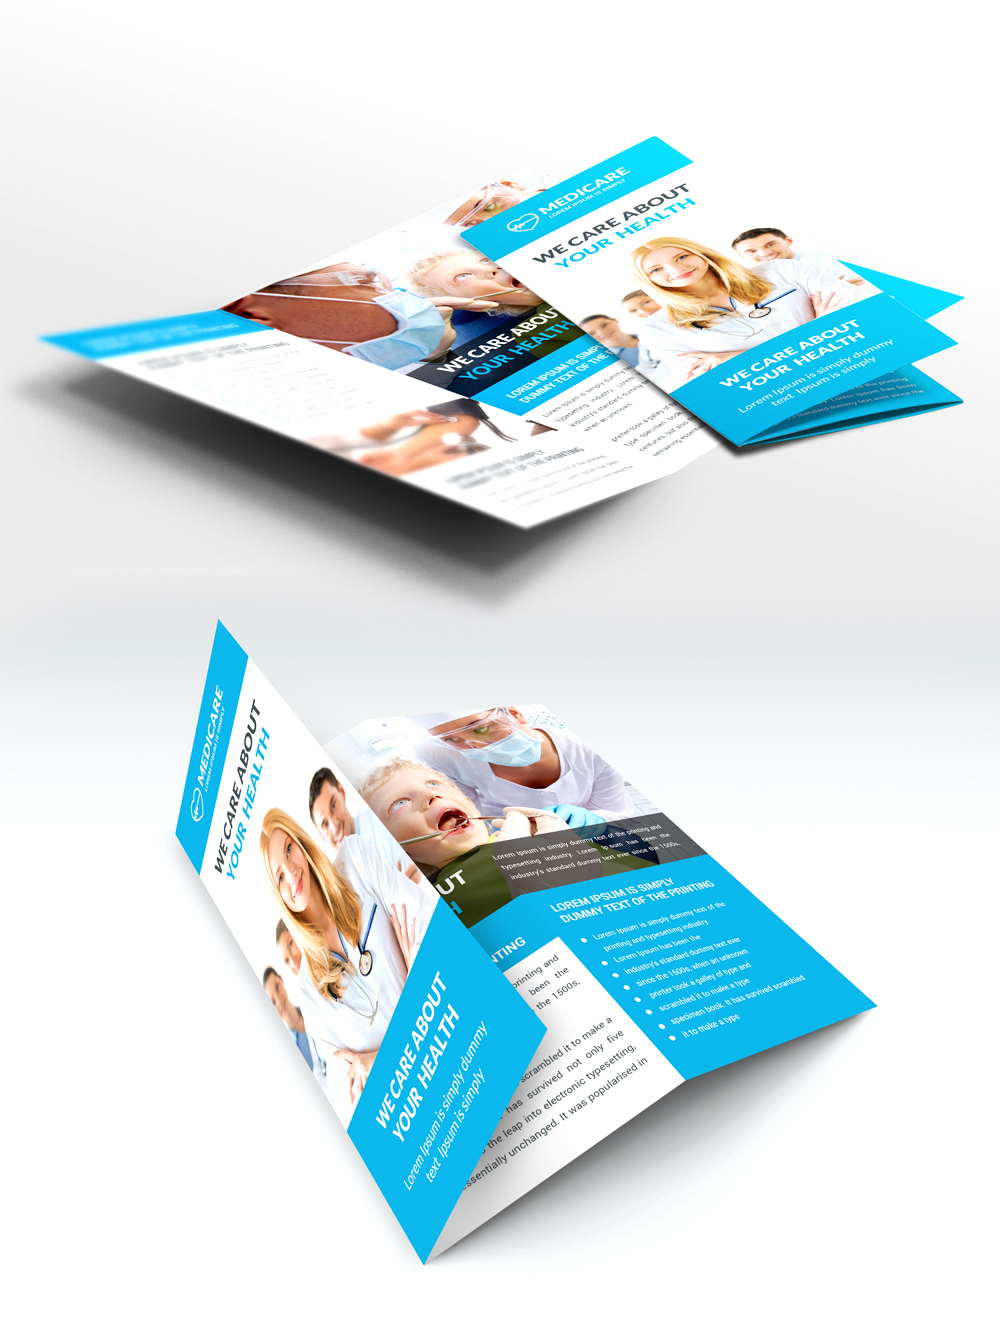 Medical Care And Hospital Trifold Brochure Template Free PSD - Tri fold brochure photoshop template